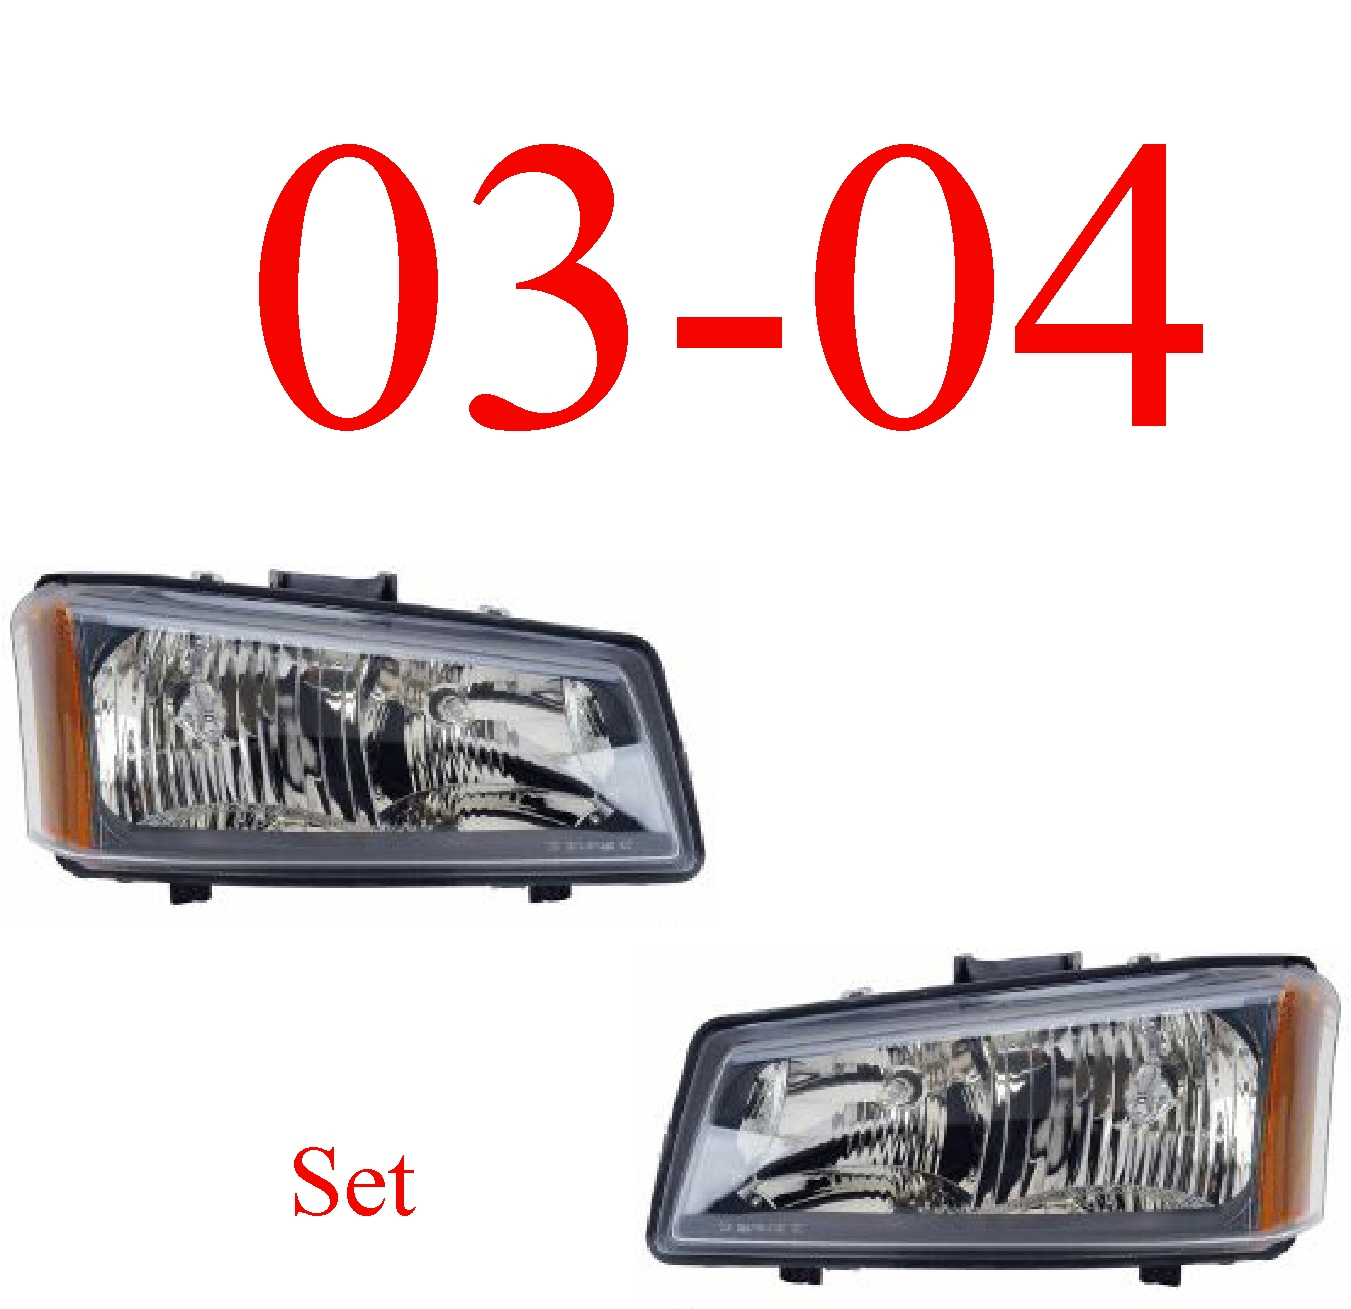 03-04 Chevy Head Light Set, Silverado, Avalanche